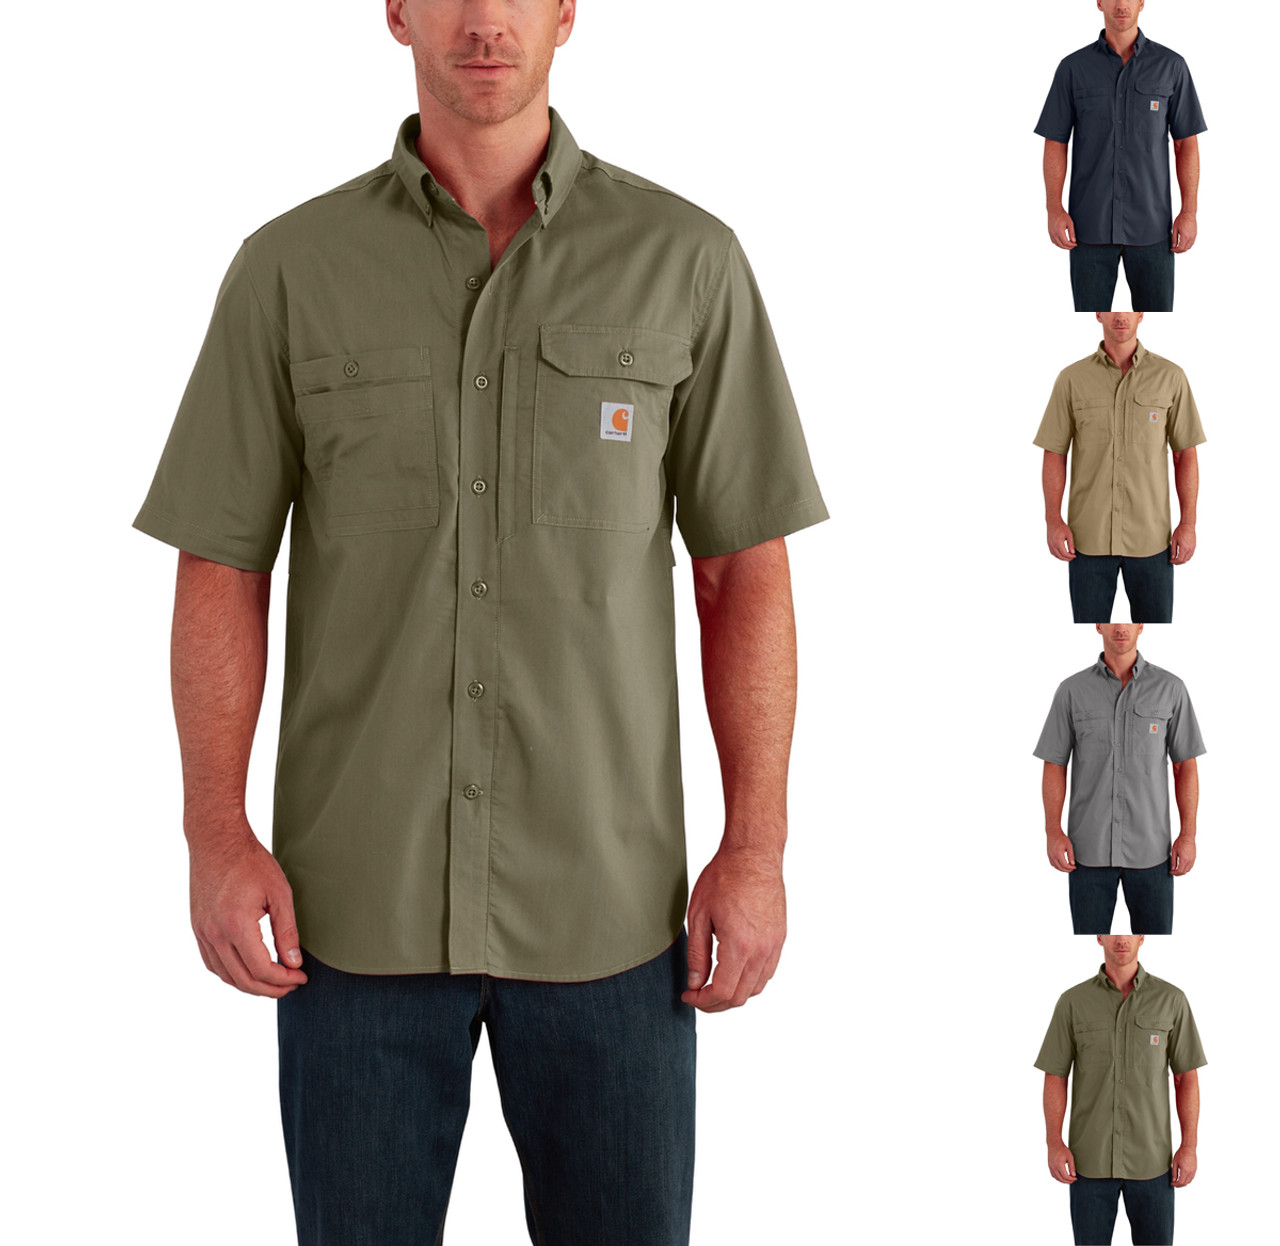 870d6aa9df Carhartt Force Ridgefield Solid Short Sleeve Shirt - Use Coupon Code   SAVE20 for Special Savings ...